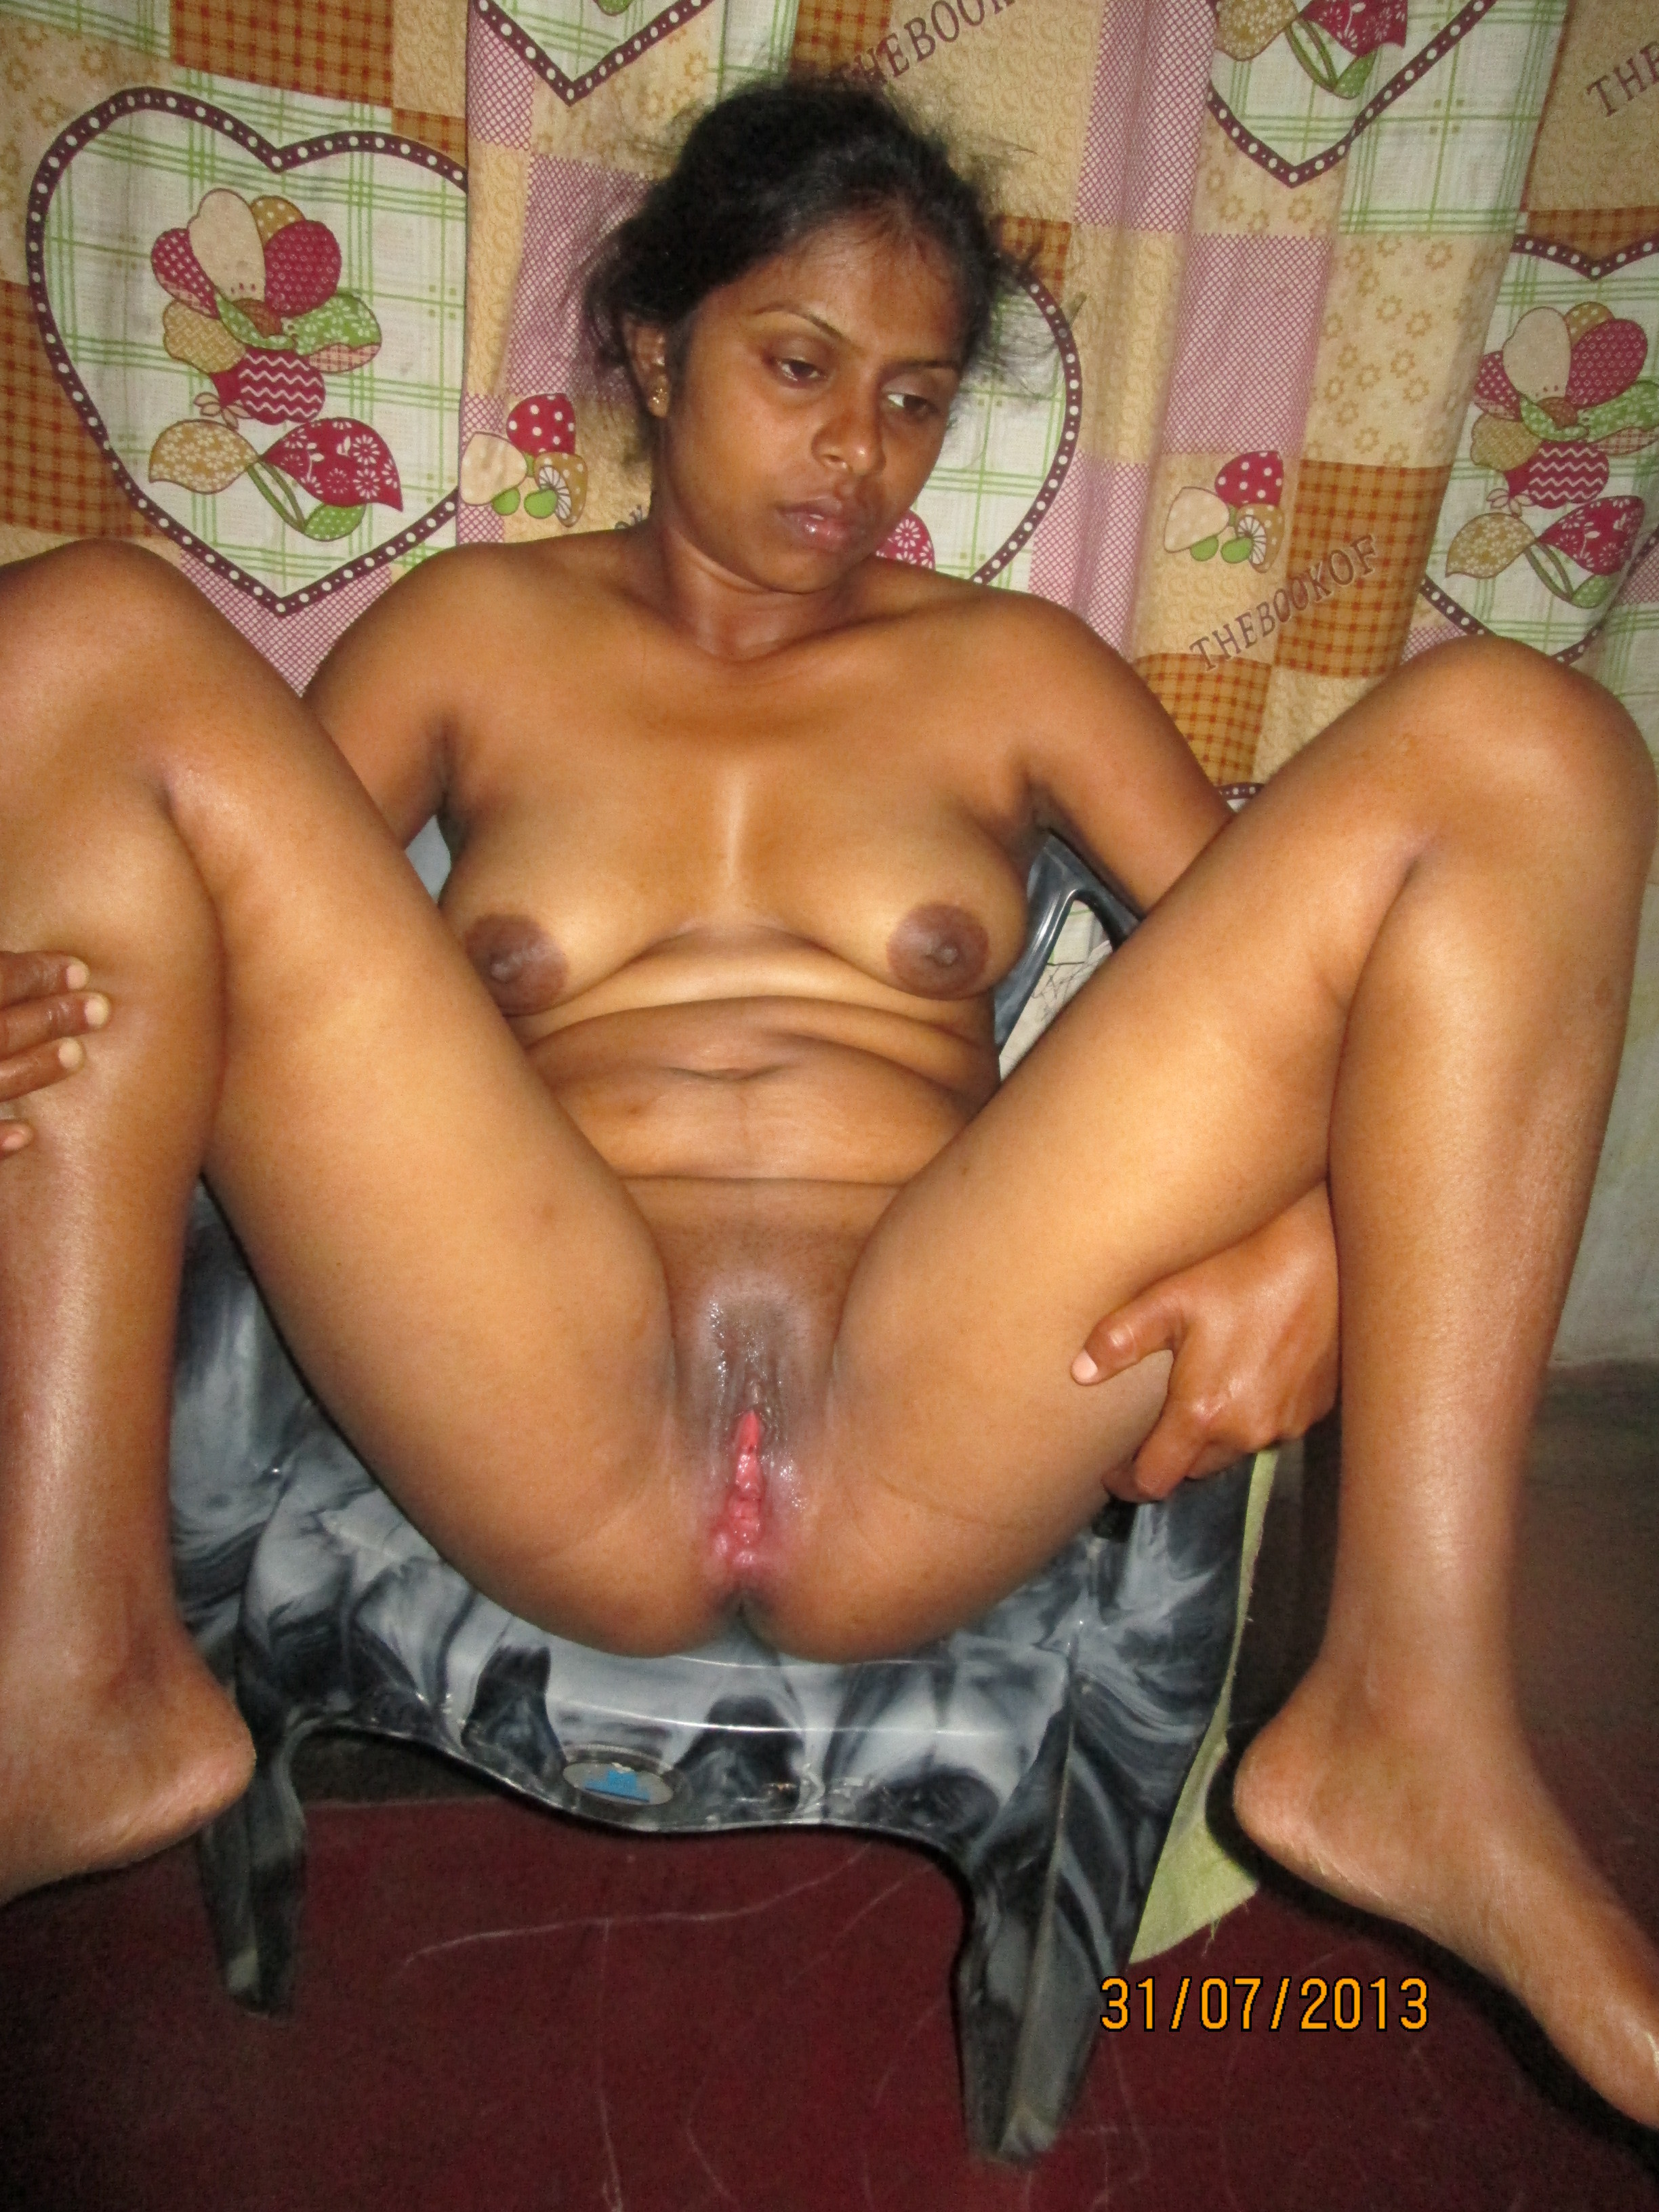 Biggest collection of nude indian girls erotic photo